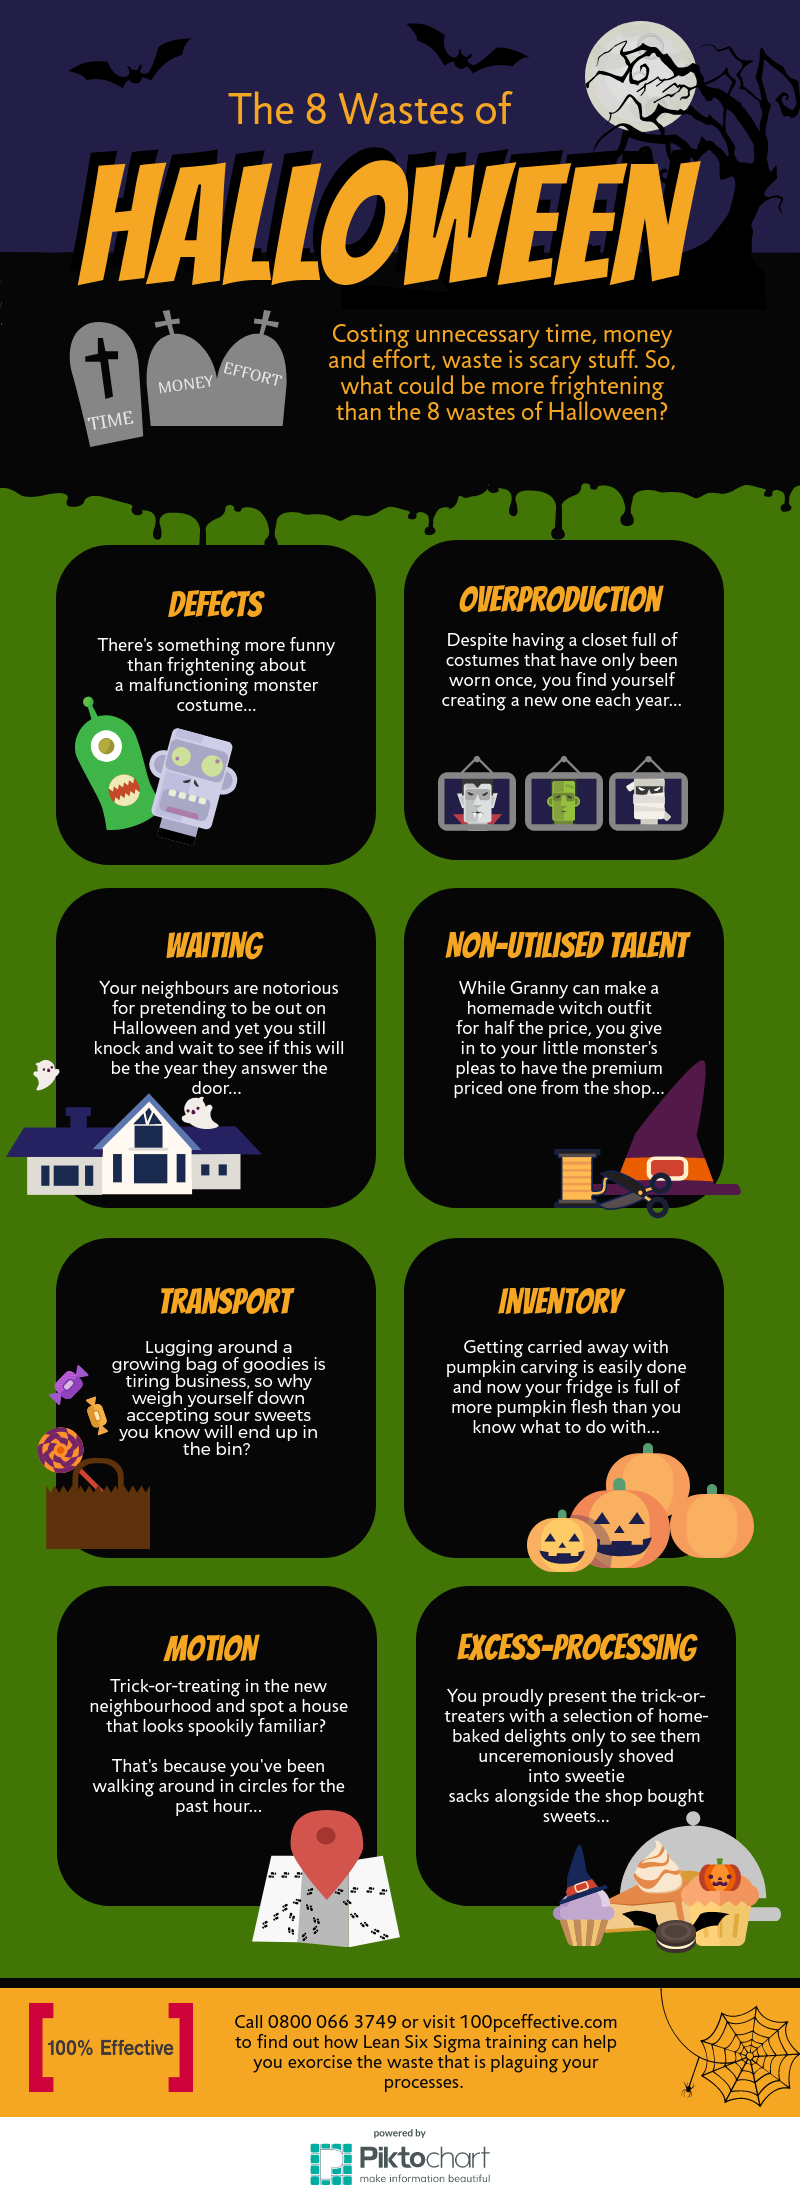 The 8 Wastes of Halloween.